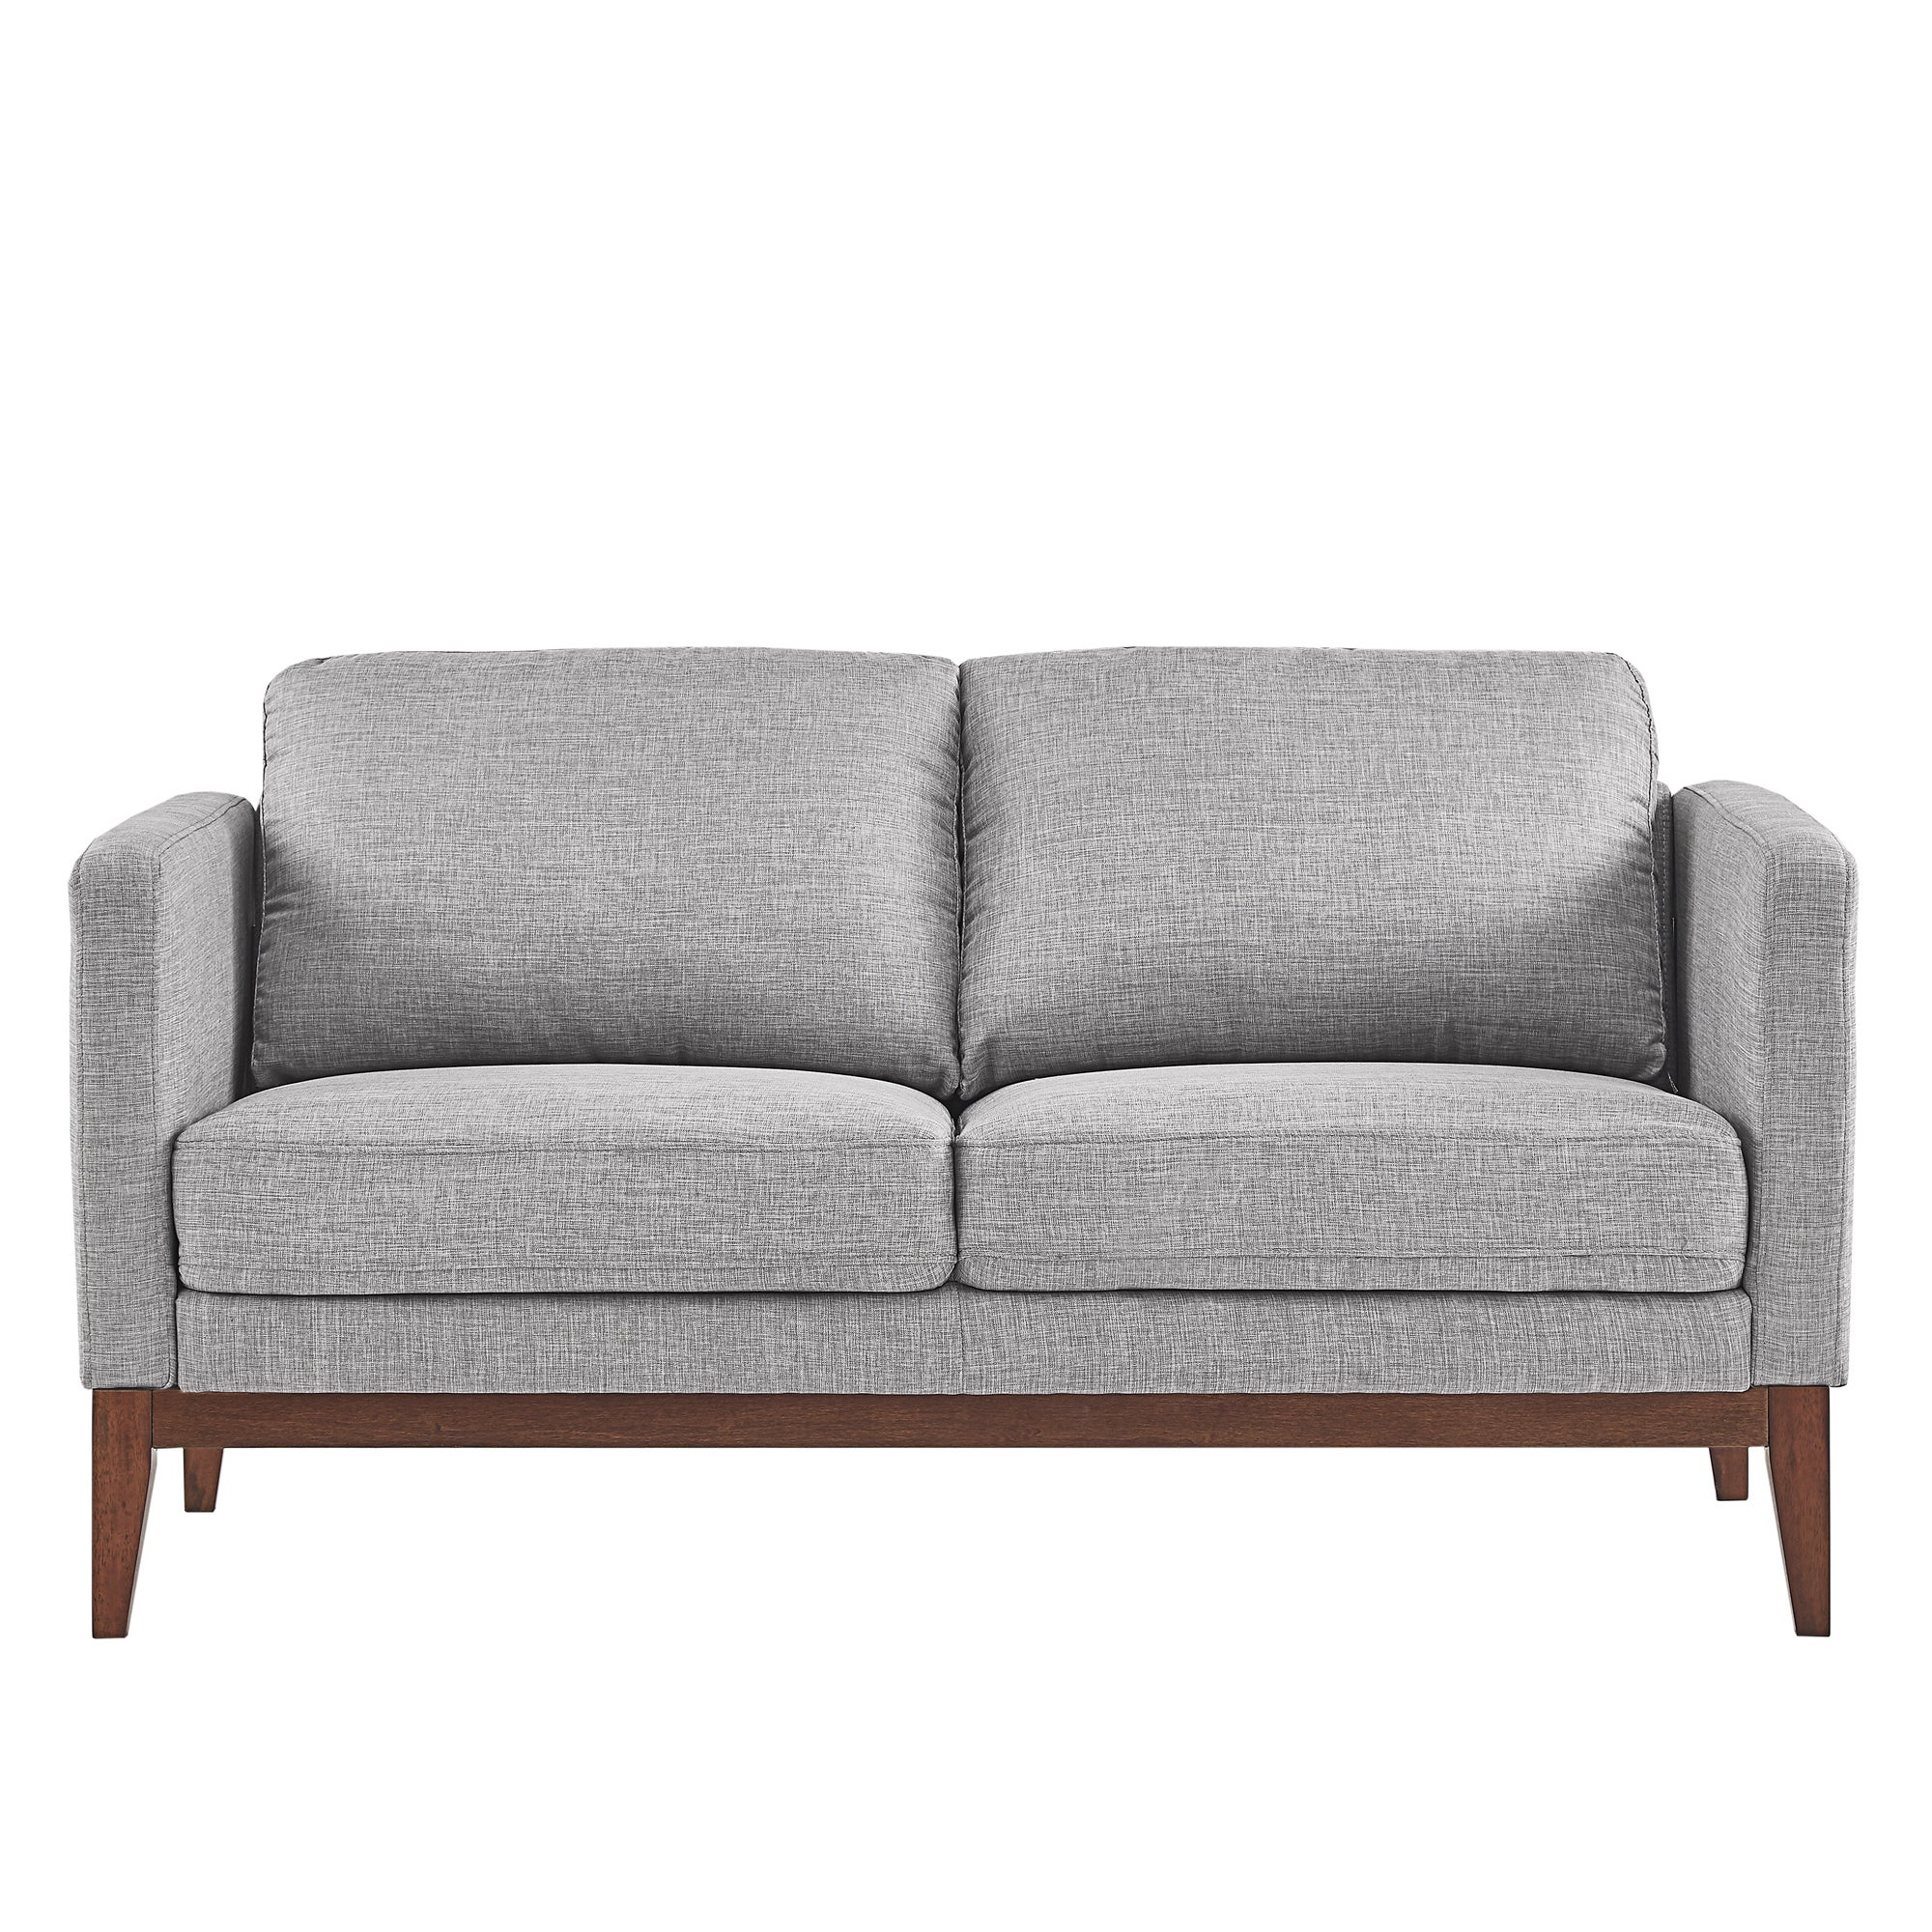 Perry Linen Upholstered Sofa And Loveseat By Inspire Q Modern Free Shipping Today 20304100